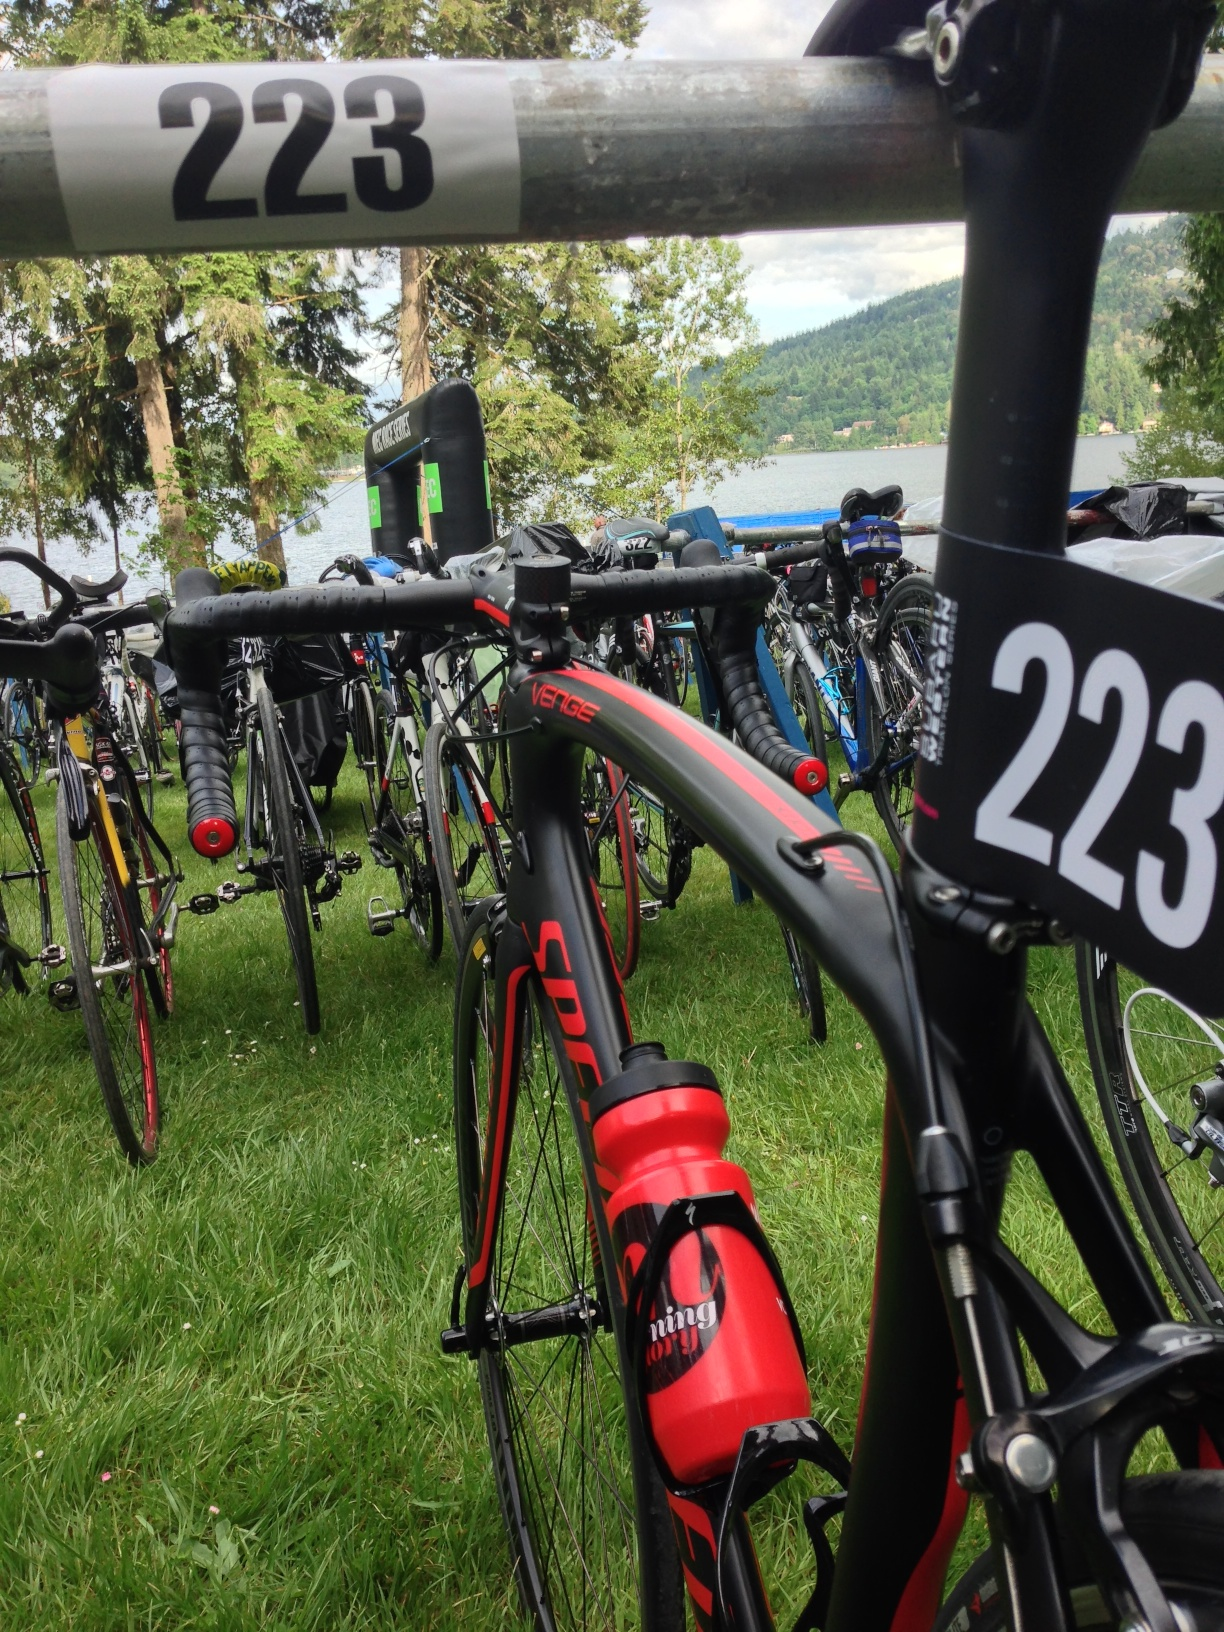 Bike 223 is racked and ready!